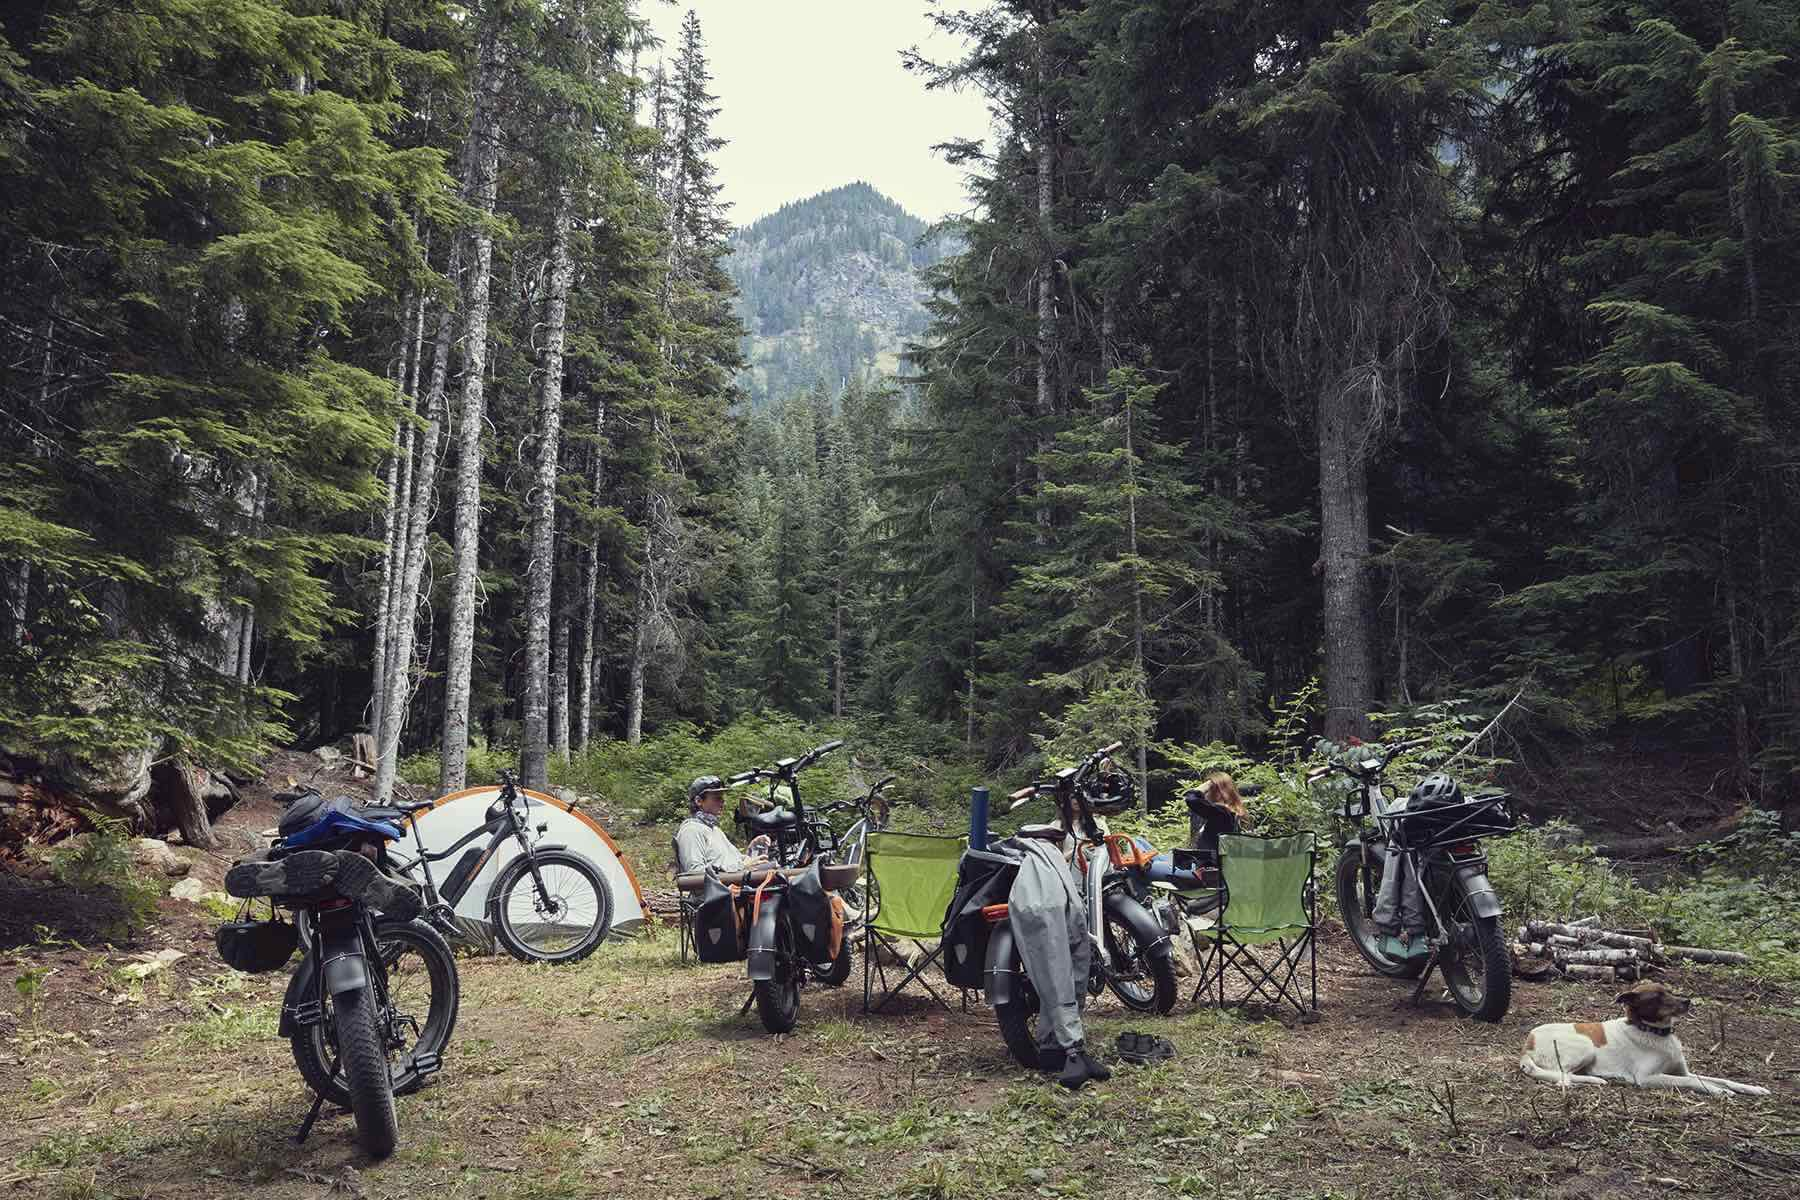 A group of people enjoying a camping trip alongside their electric bikes.